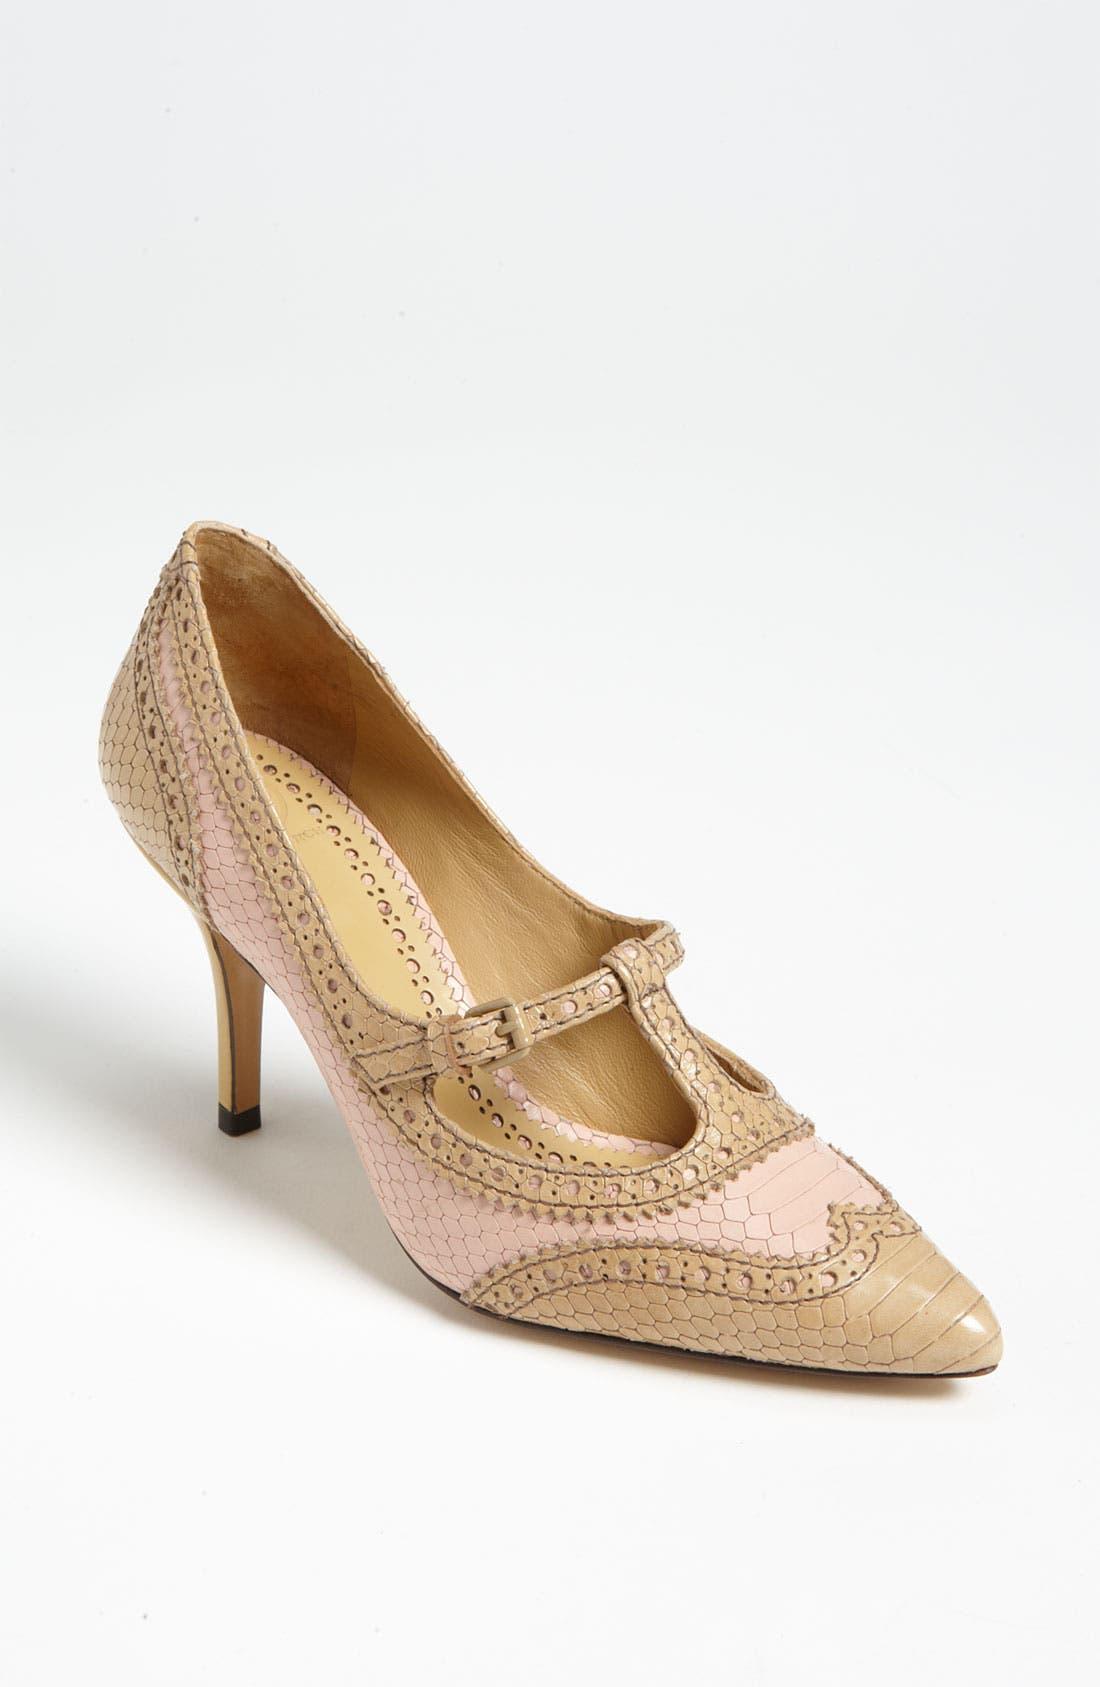 Main Image - Tory Burch 'Everly' Pump